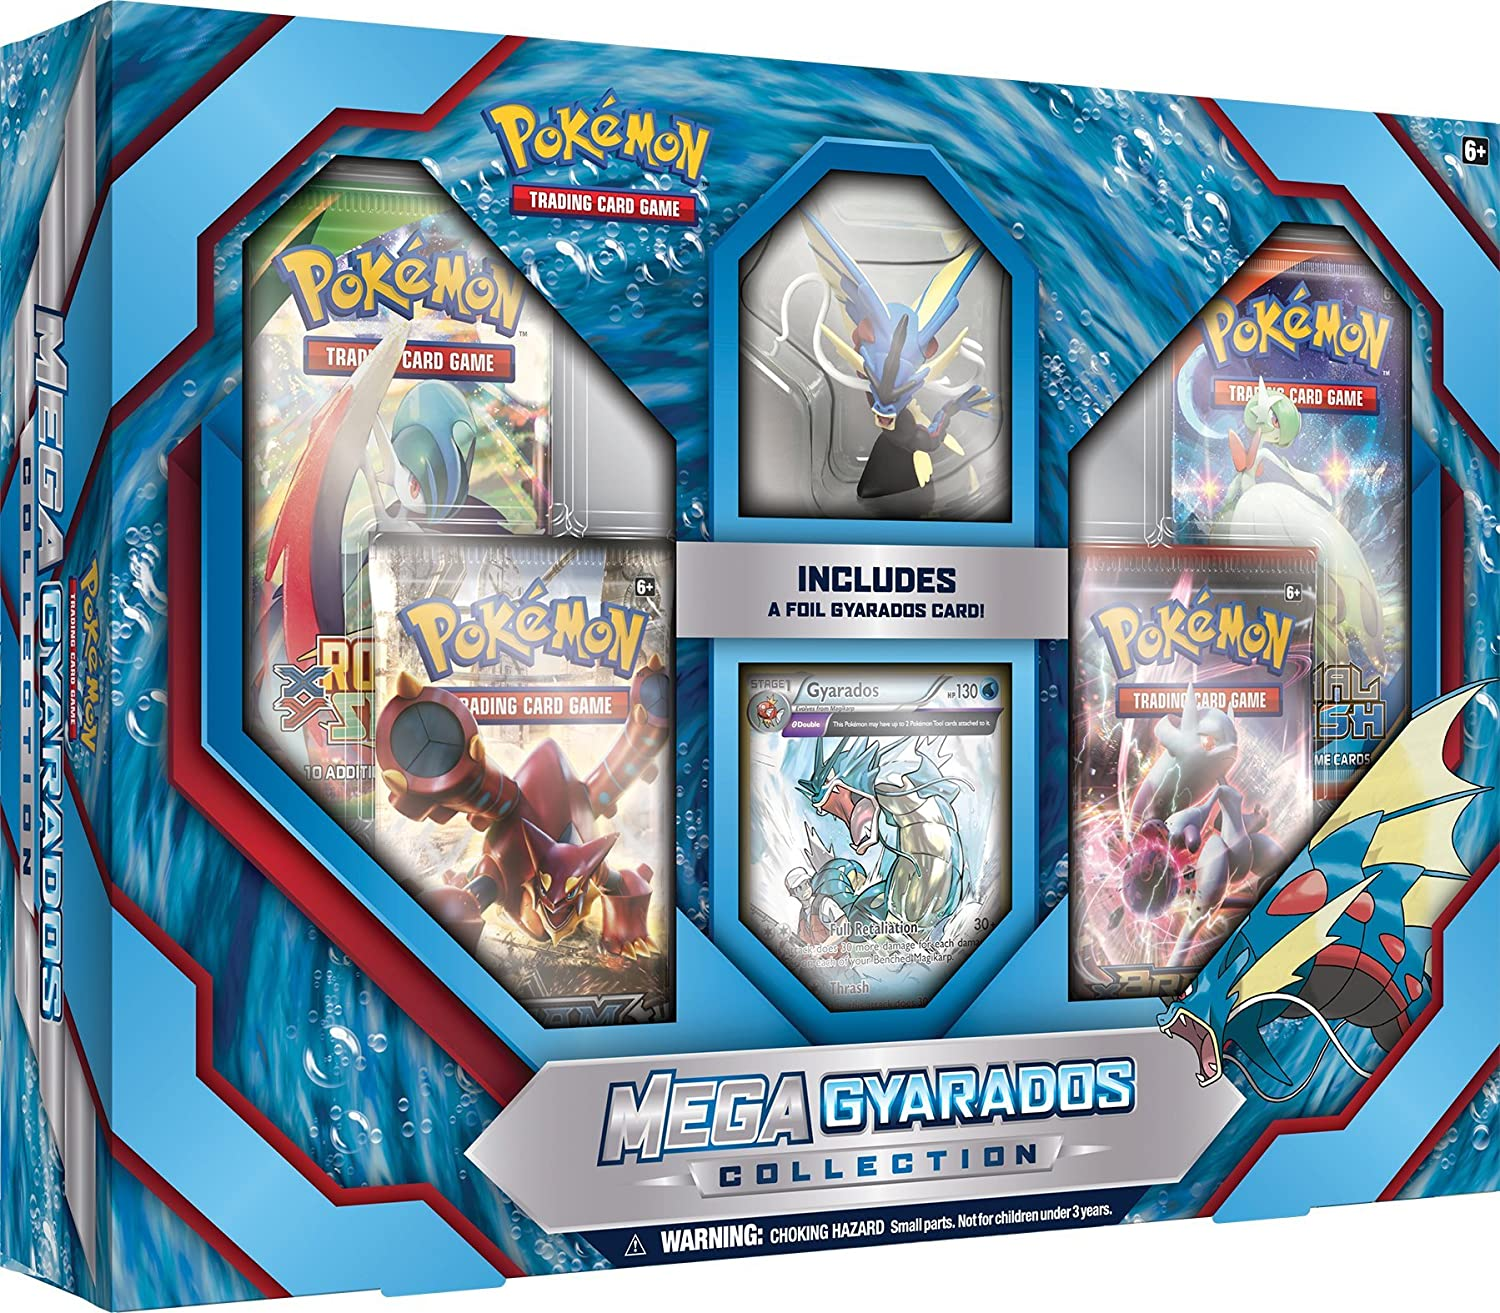 amazoncom pokemon tcg mega gyarados collection card game toys games - Where Can I Sell My Pokemon Cards In Person